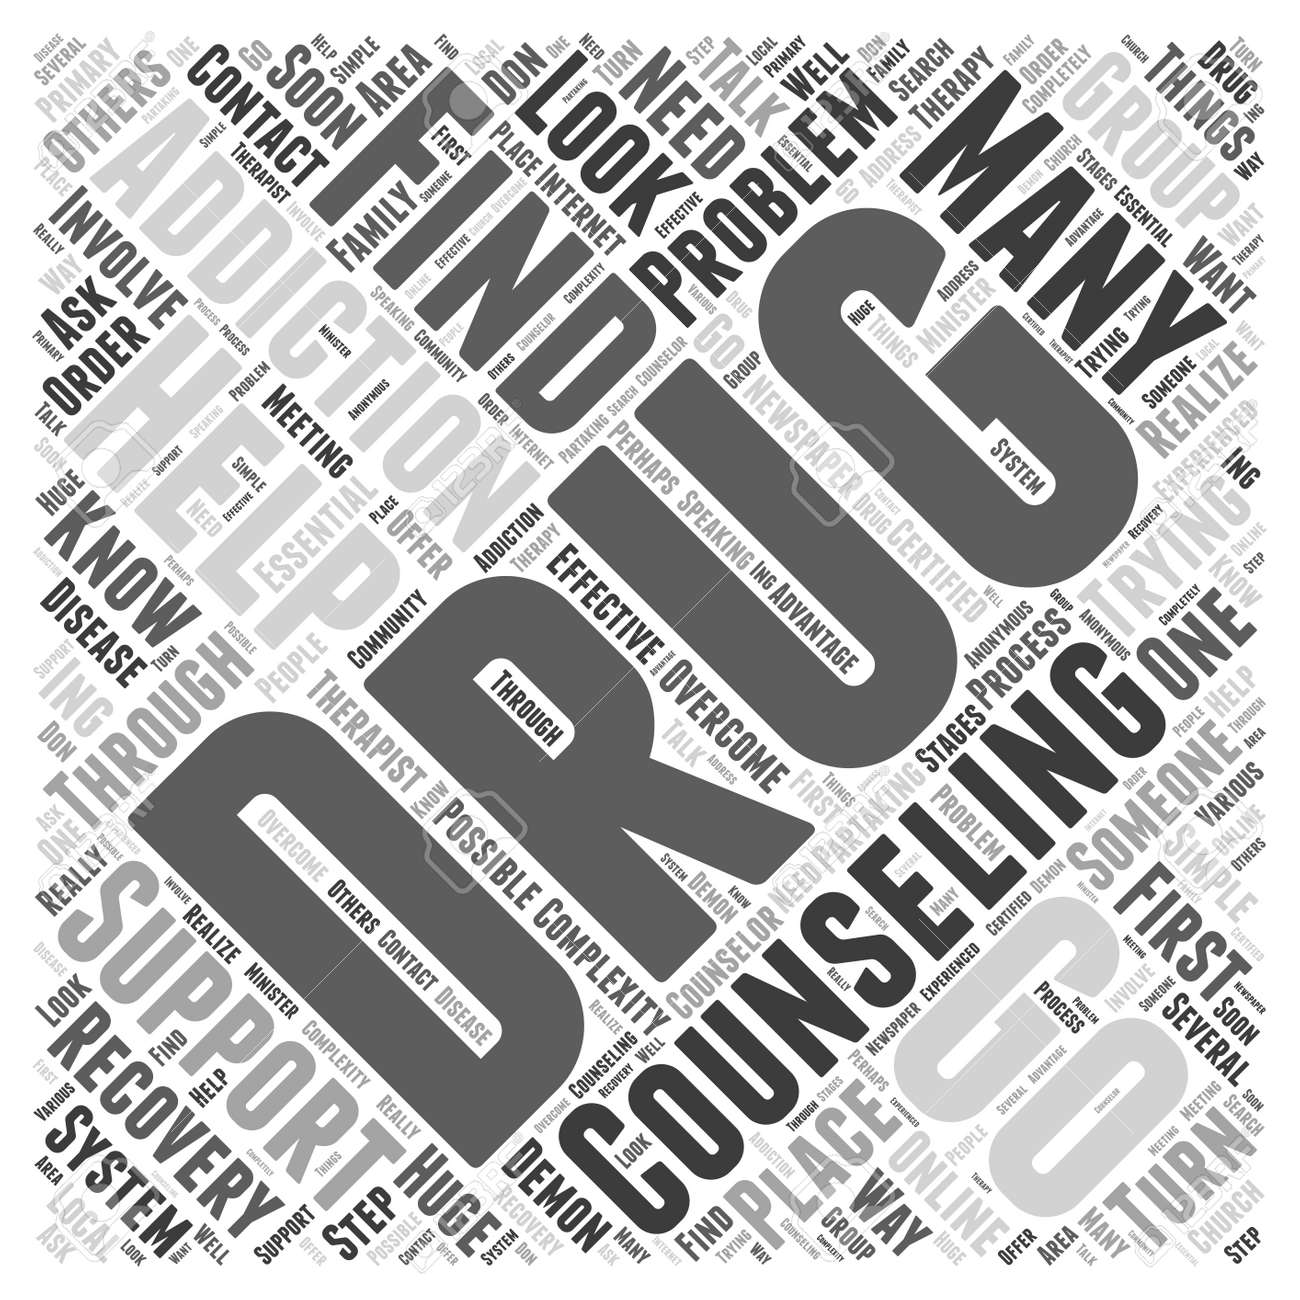 Drug Addiction Counseling Word Cloud Concept Royalty Free Cliparts